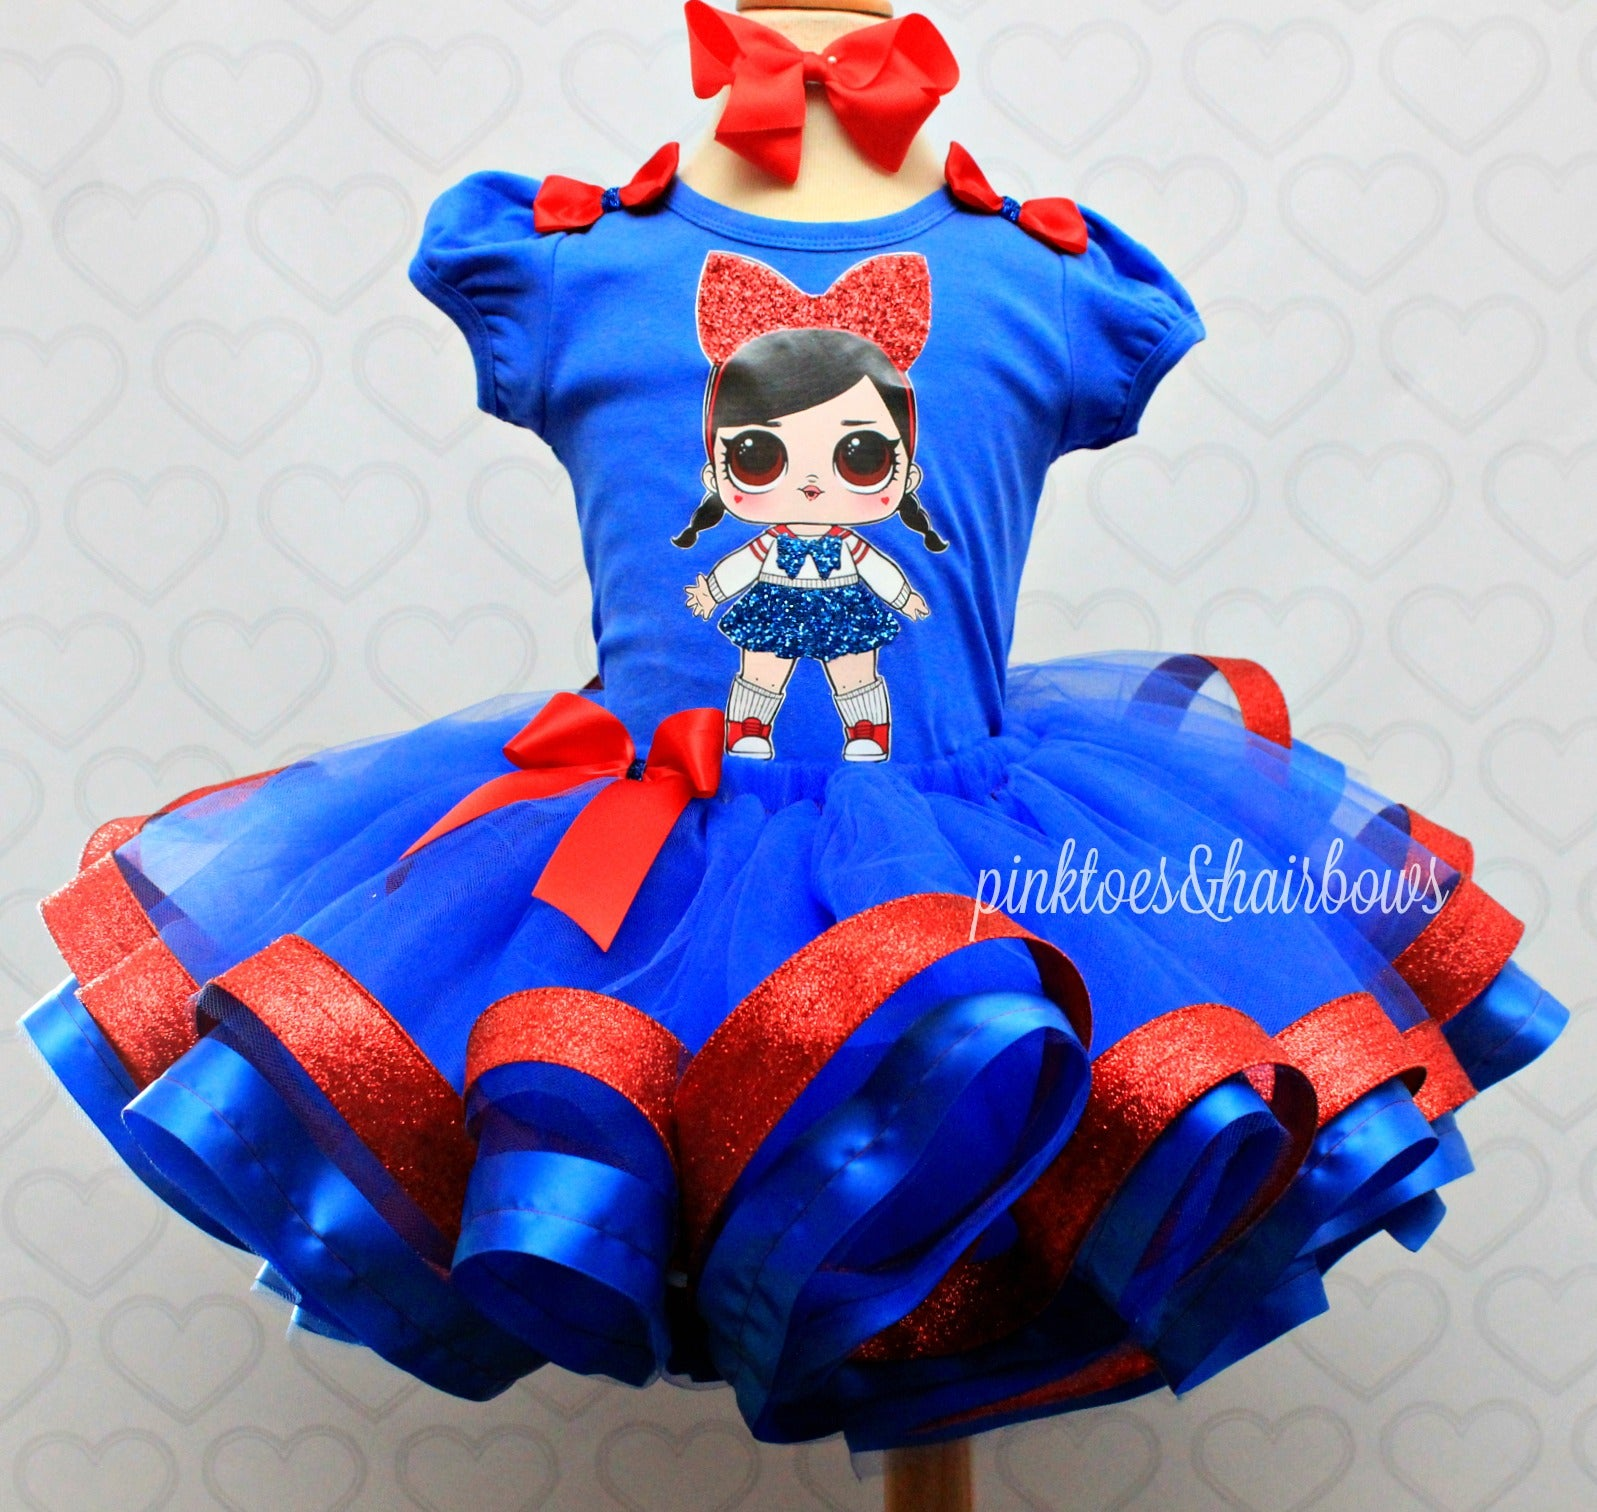 Fanime Lol surprise doll tutu set-lol surprise outfit- lol surprise dress